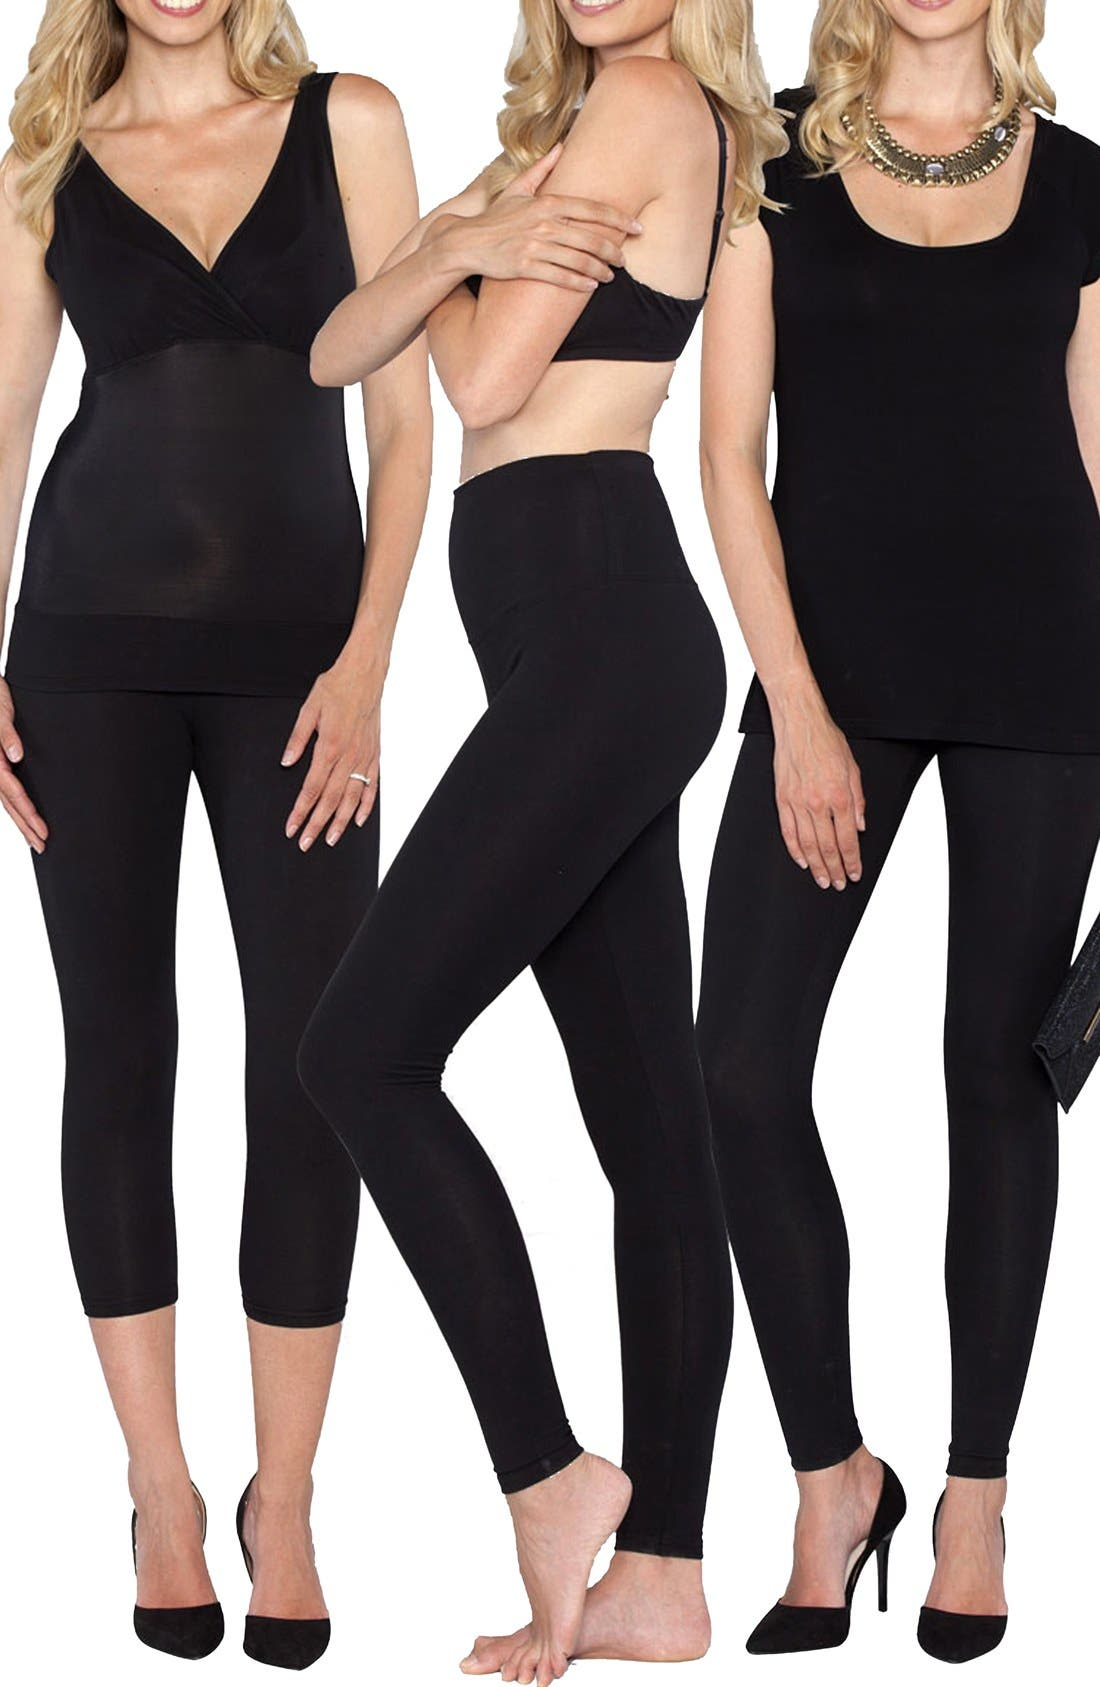 ANGEL MATERNITY 'The Tummy Tight' Postpartum Shapewear Kit